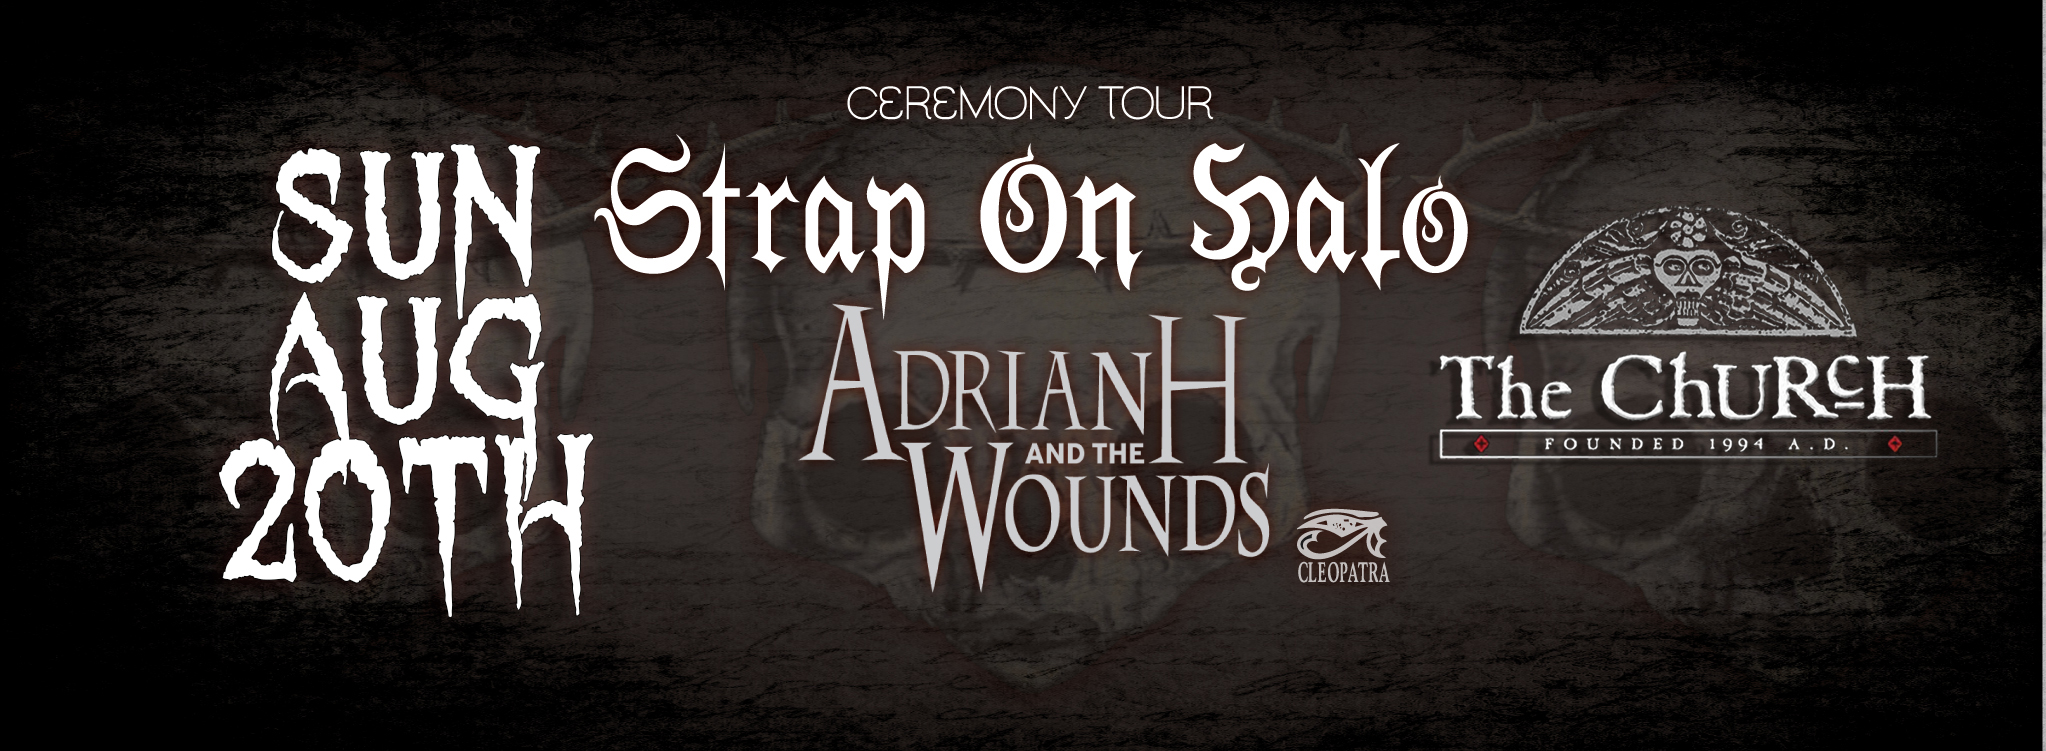 Click to view banner for 08.20.2017 Ceremony Tour: Strap On Halo and Adrian H & The Wounds!